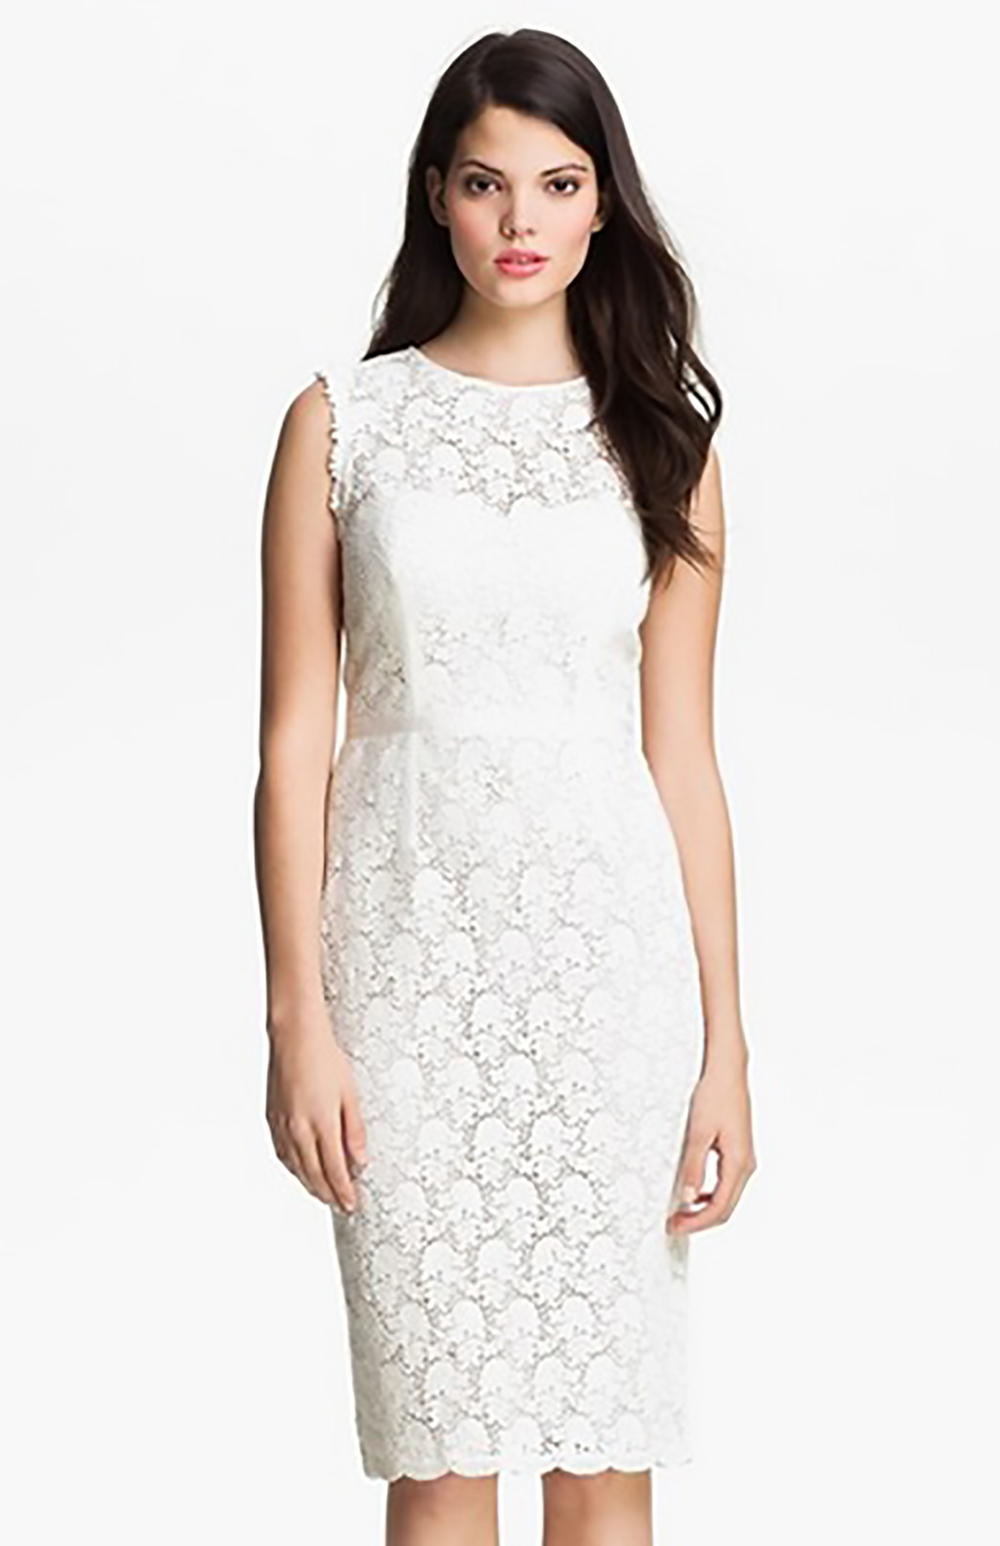 nordstrom jill jill stuart illusion yoke lace sheath dress 1500.jpg